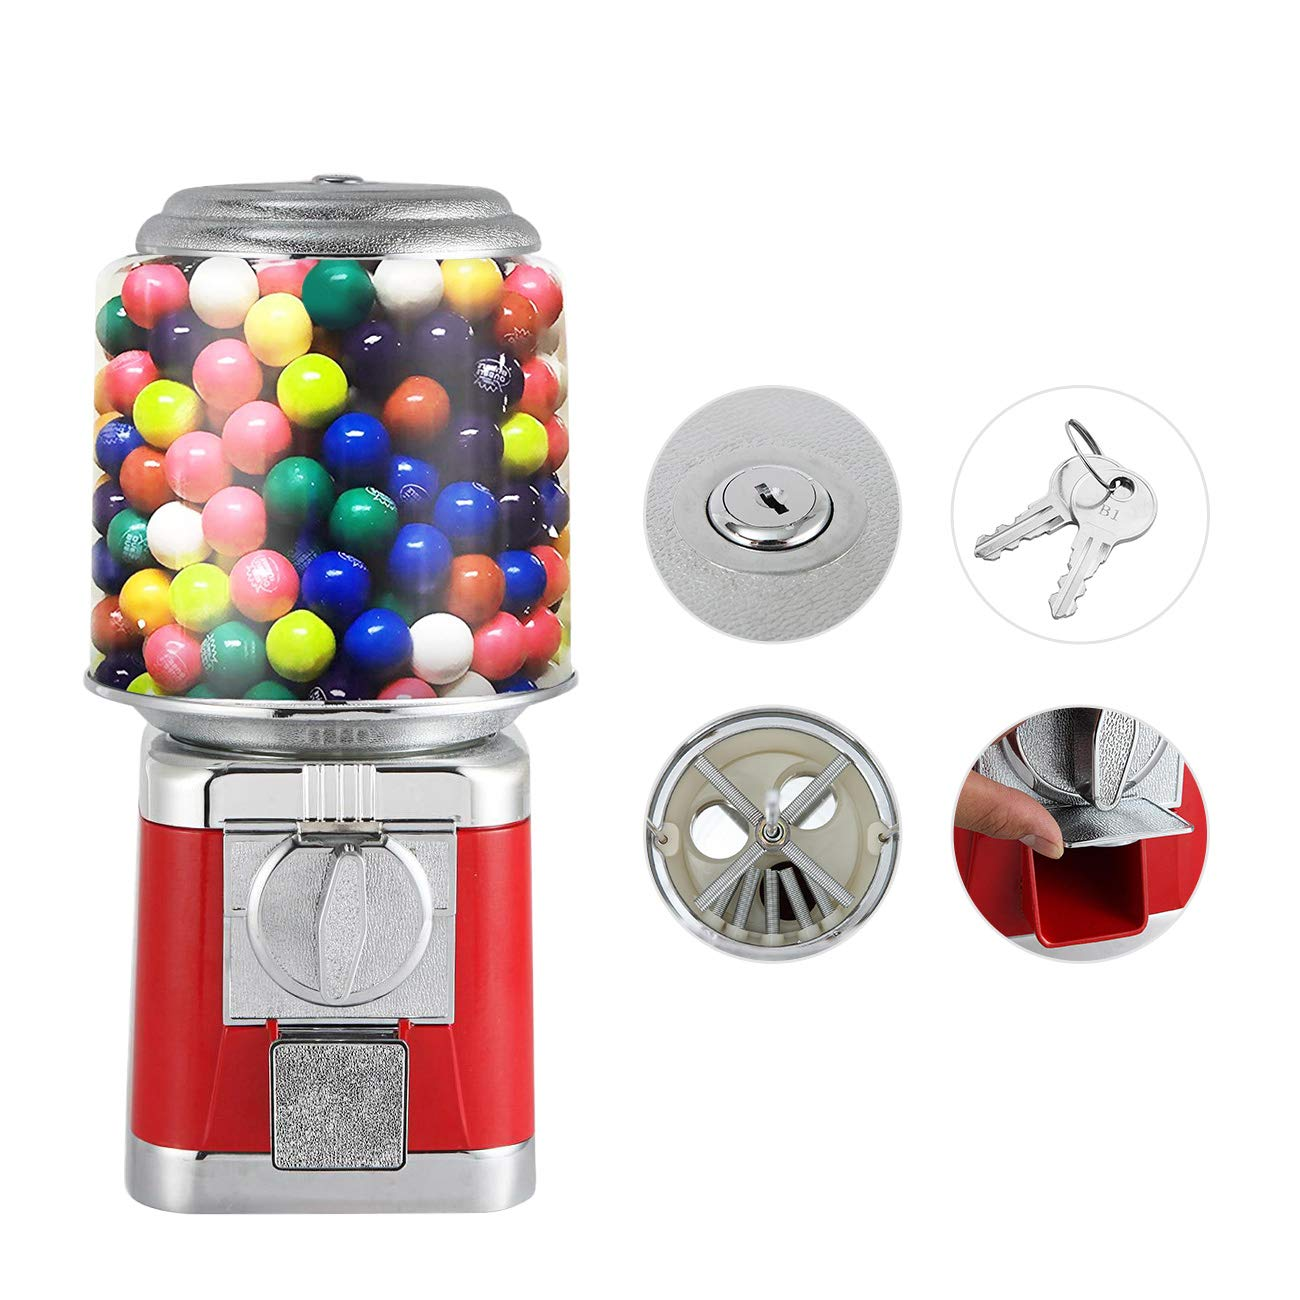 Gumball Machine Metal Gumball Candy Vending Machine Removable Canisters Capsule Bouncy Ball Gumball Vending Dispenser Machine